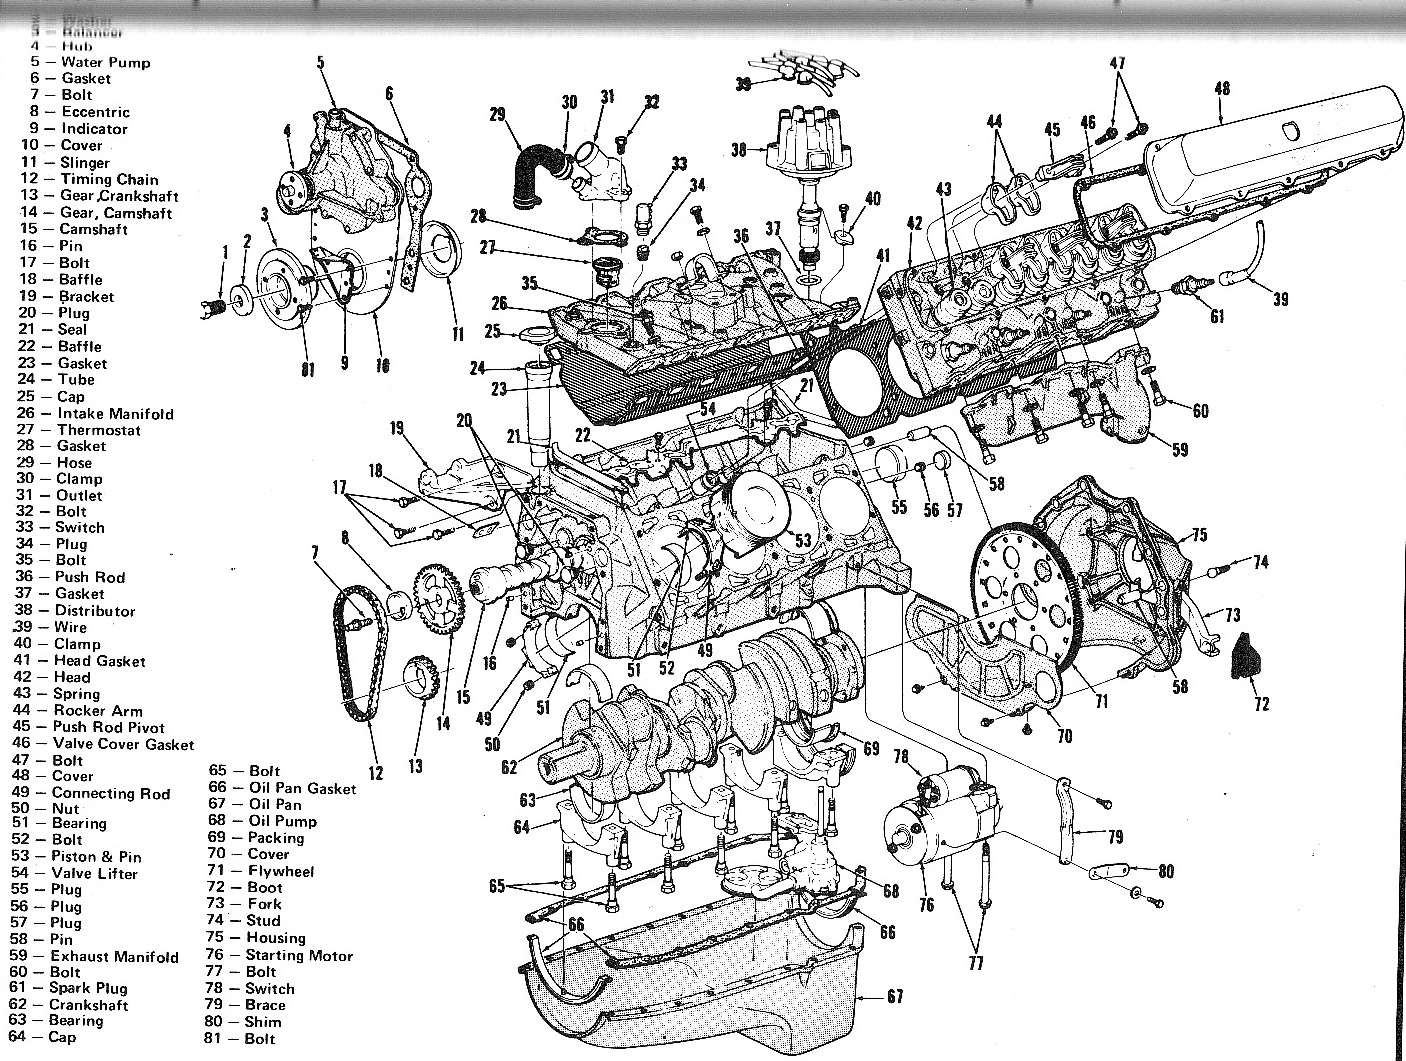 how can get full engine diagrams grabcad questions rh grabcad com Diesel Engine Diagram Super Beetle Engine Diagram